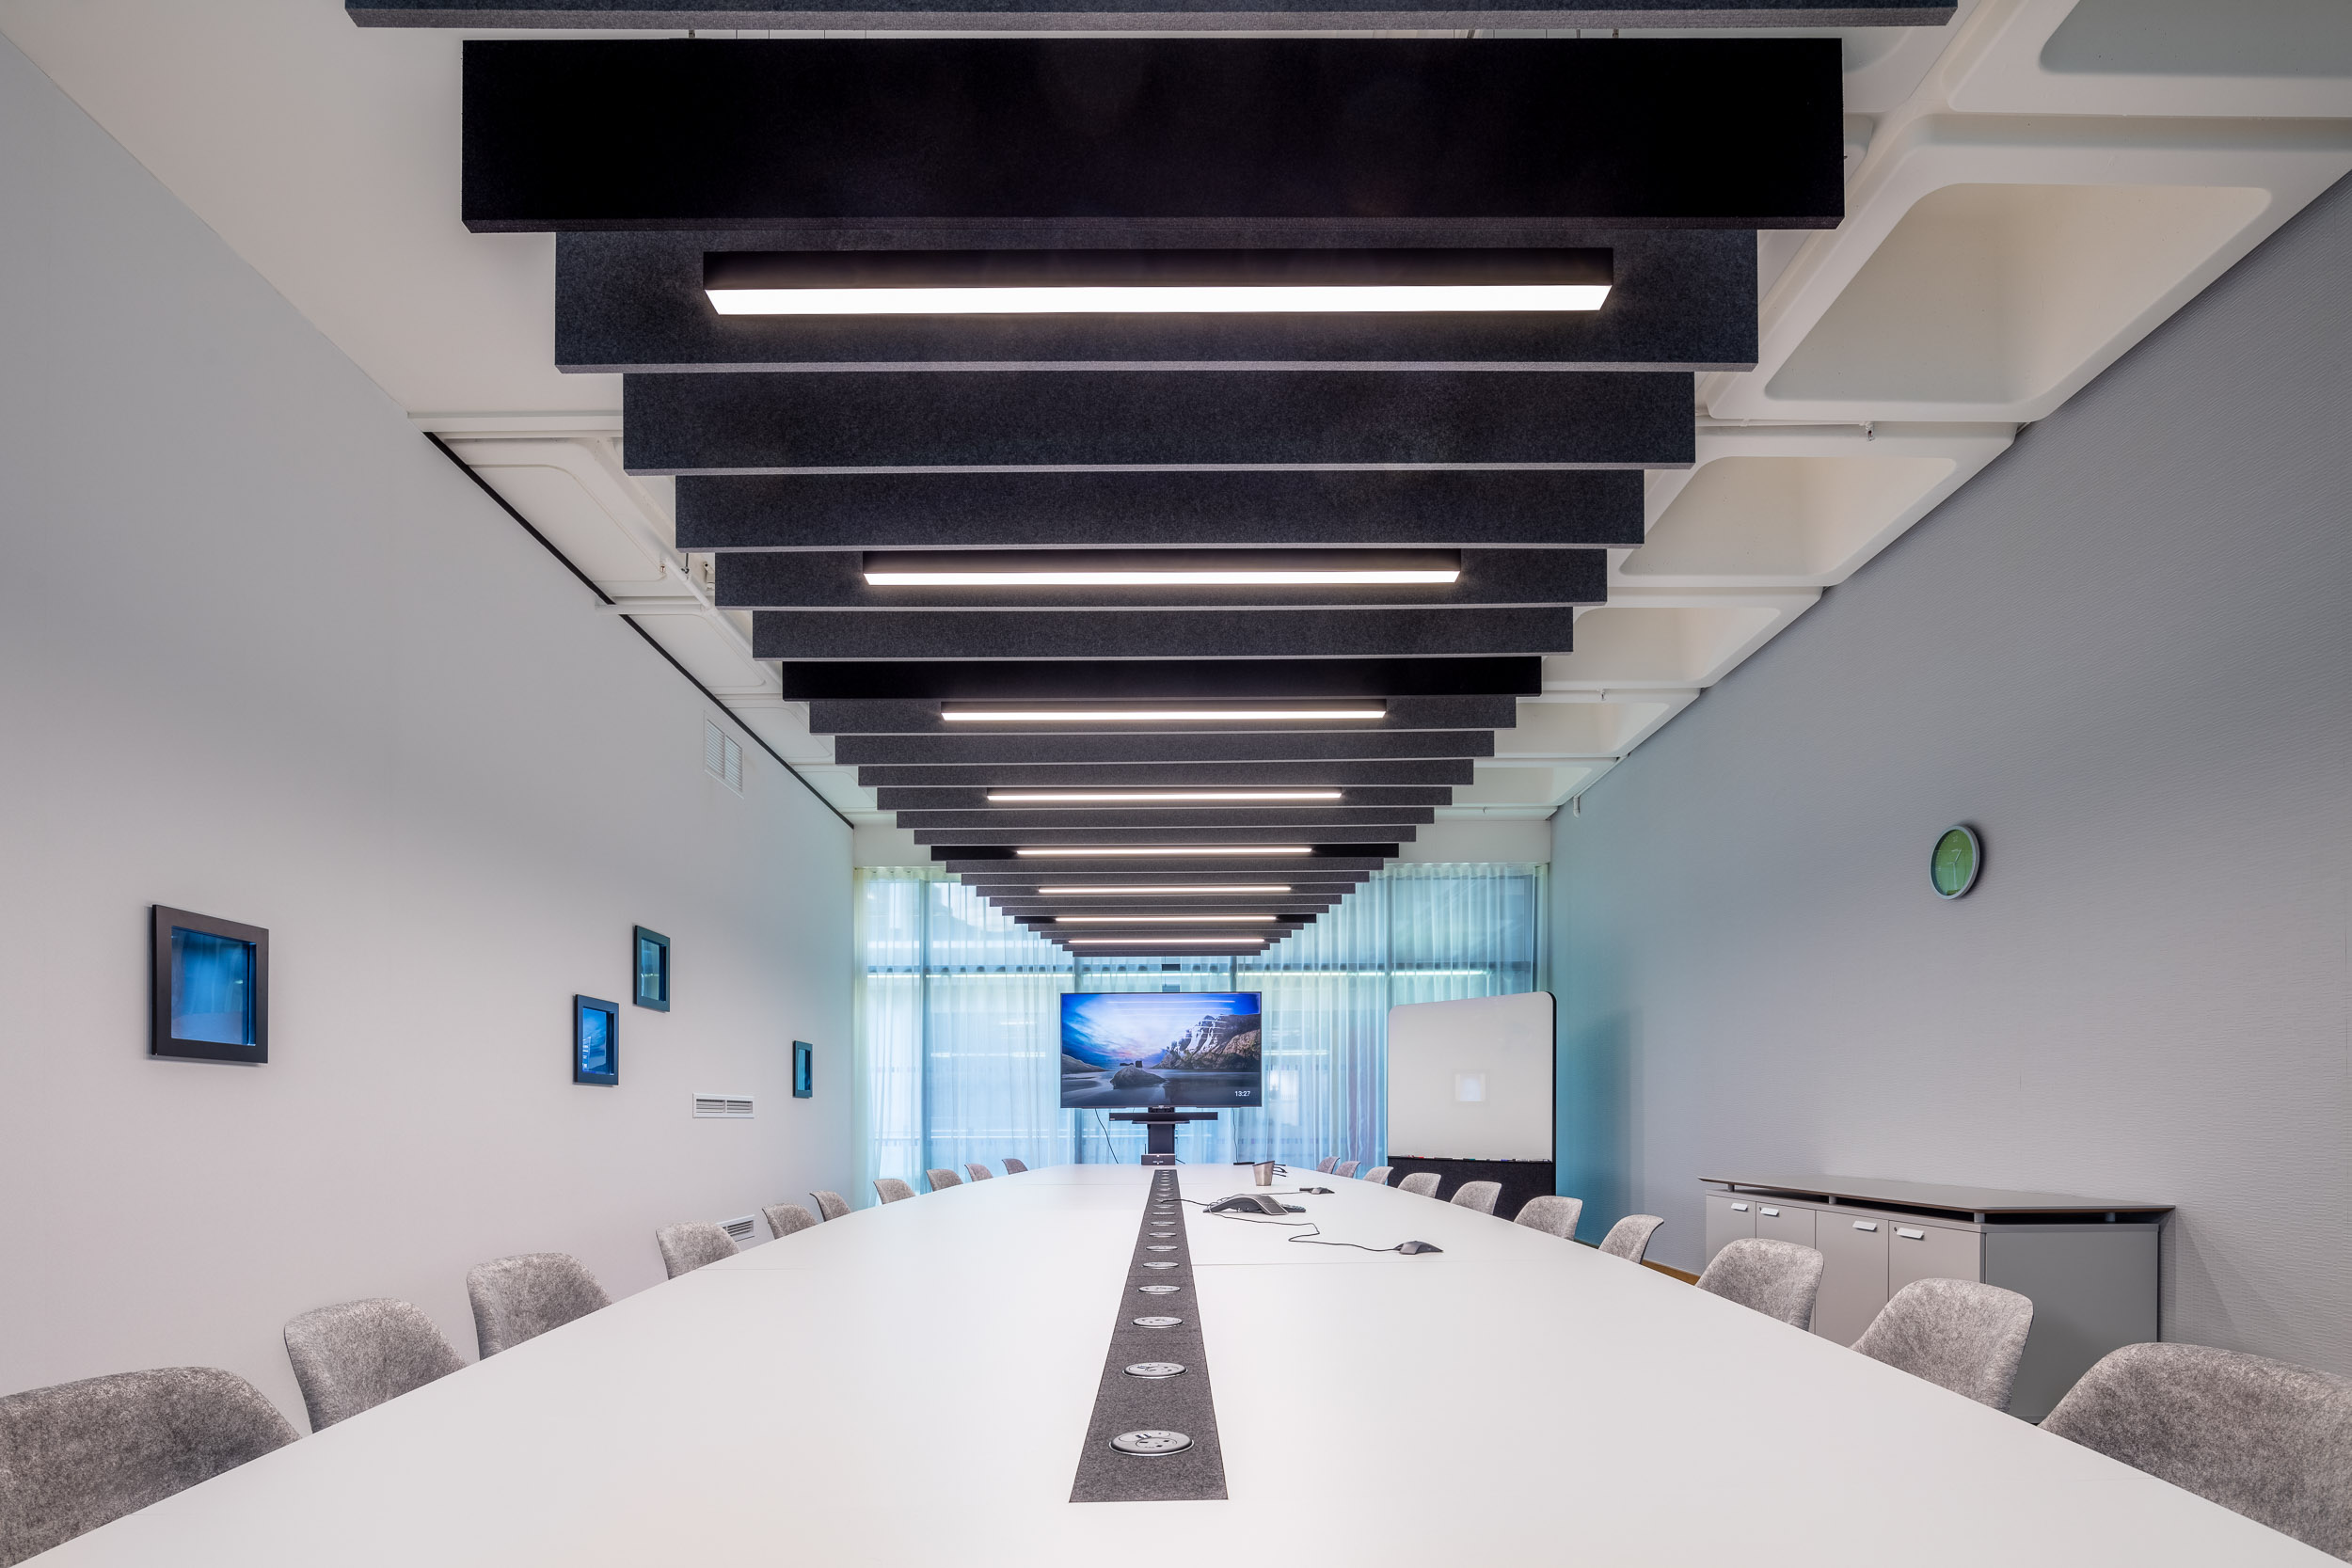 Board room acoustic lighting panels